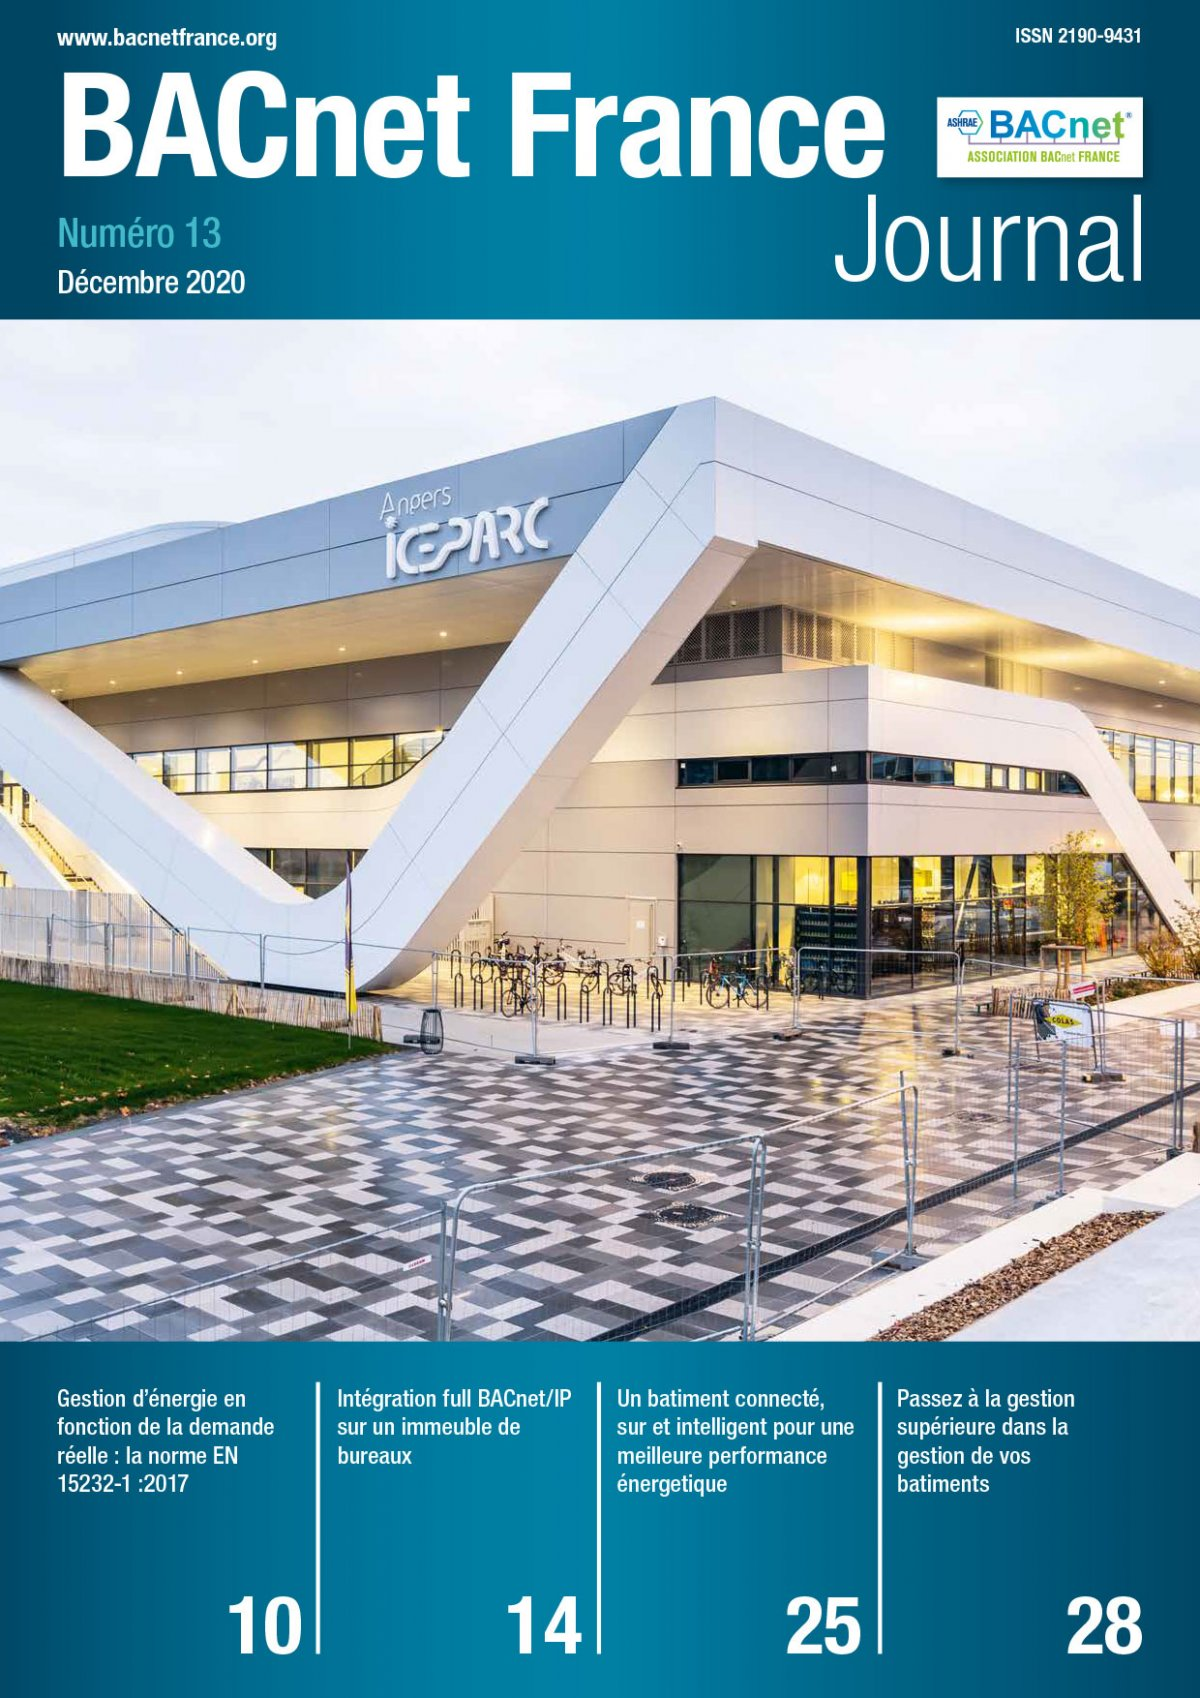 BACnet France Journal 13